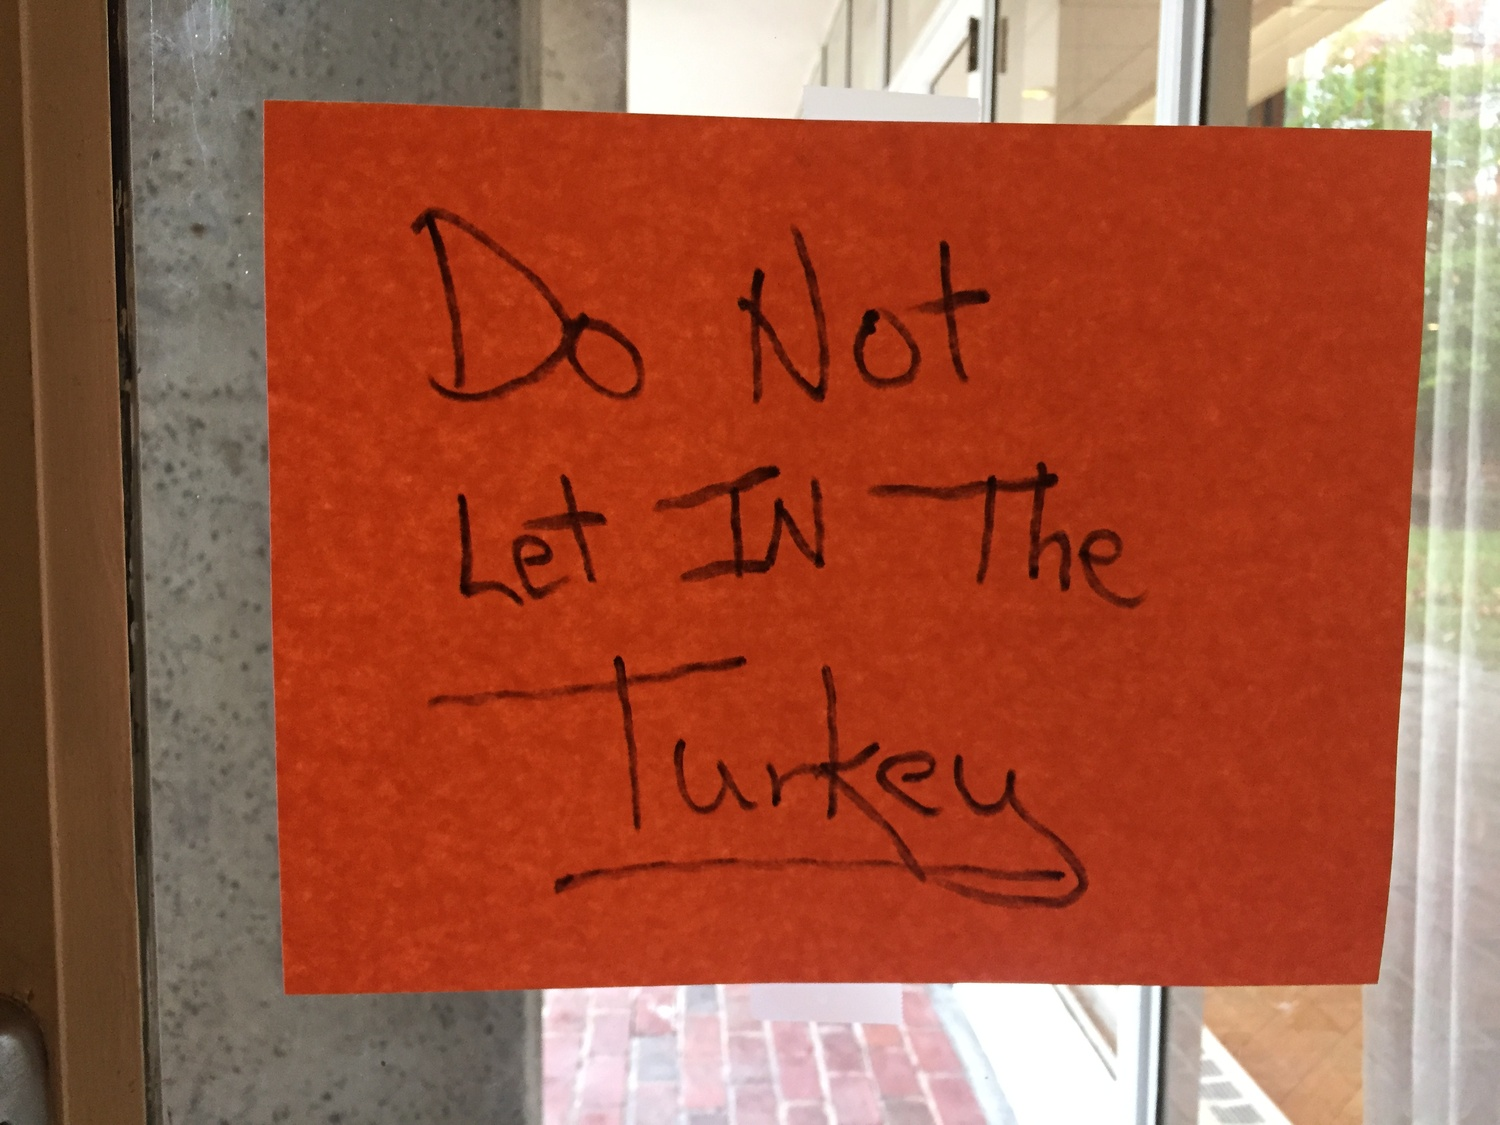 A sign on a door in Currier House imploring students to not let any of the turkeys in.